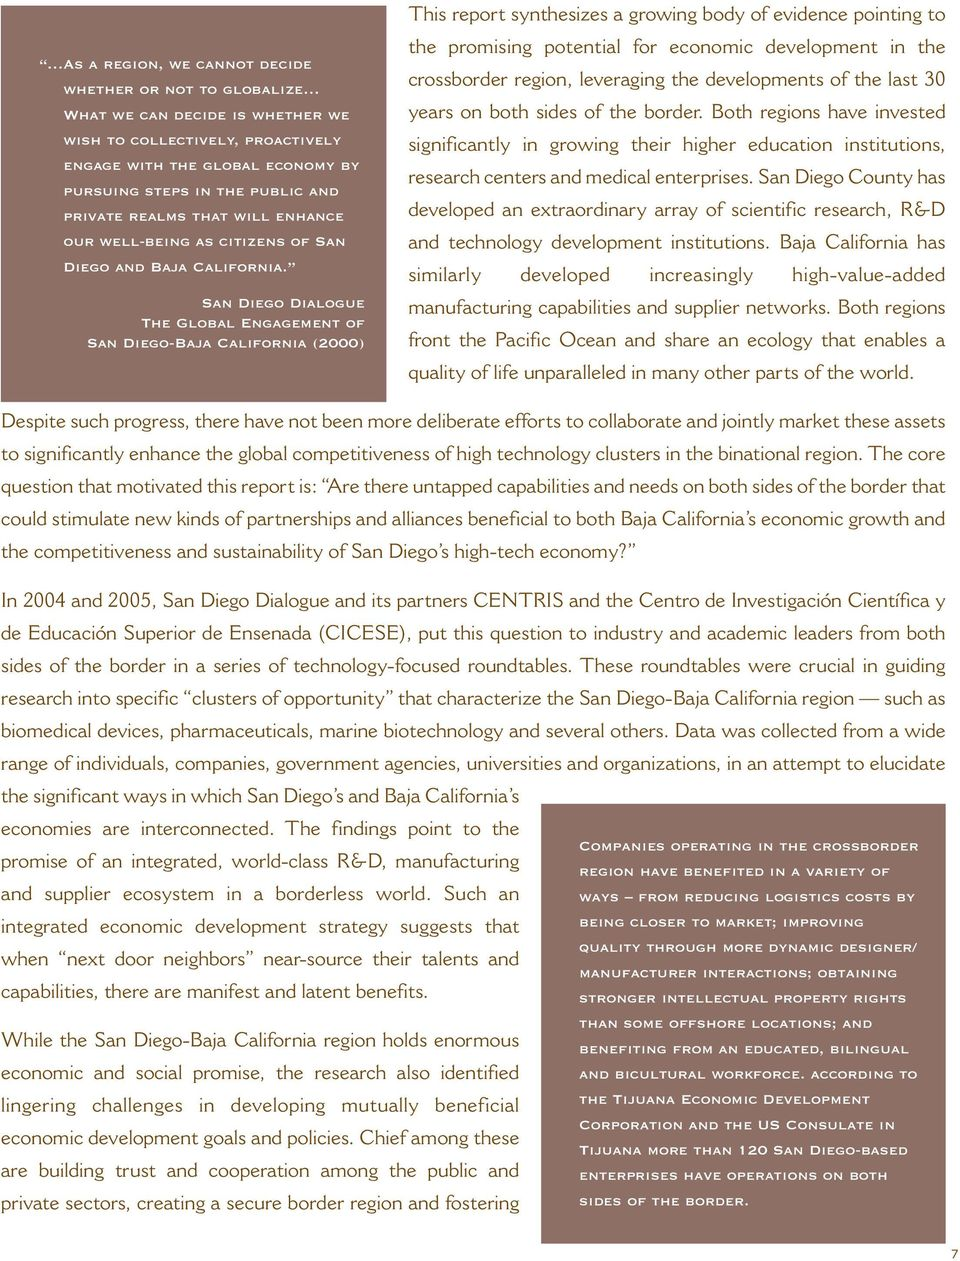 San Diego Dialogue The Global Engagement of San Diego-Baja California (2000) This report synthesizes a growing body of evidence pointing to the promising potential for economic development in the